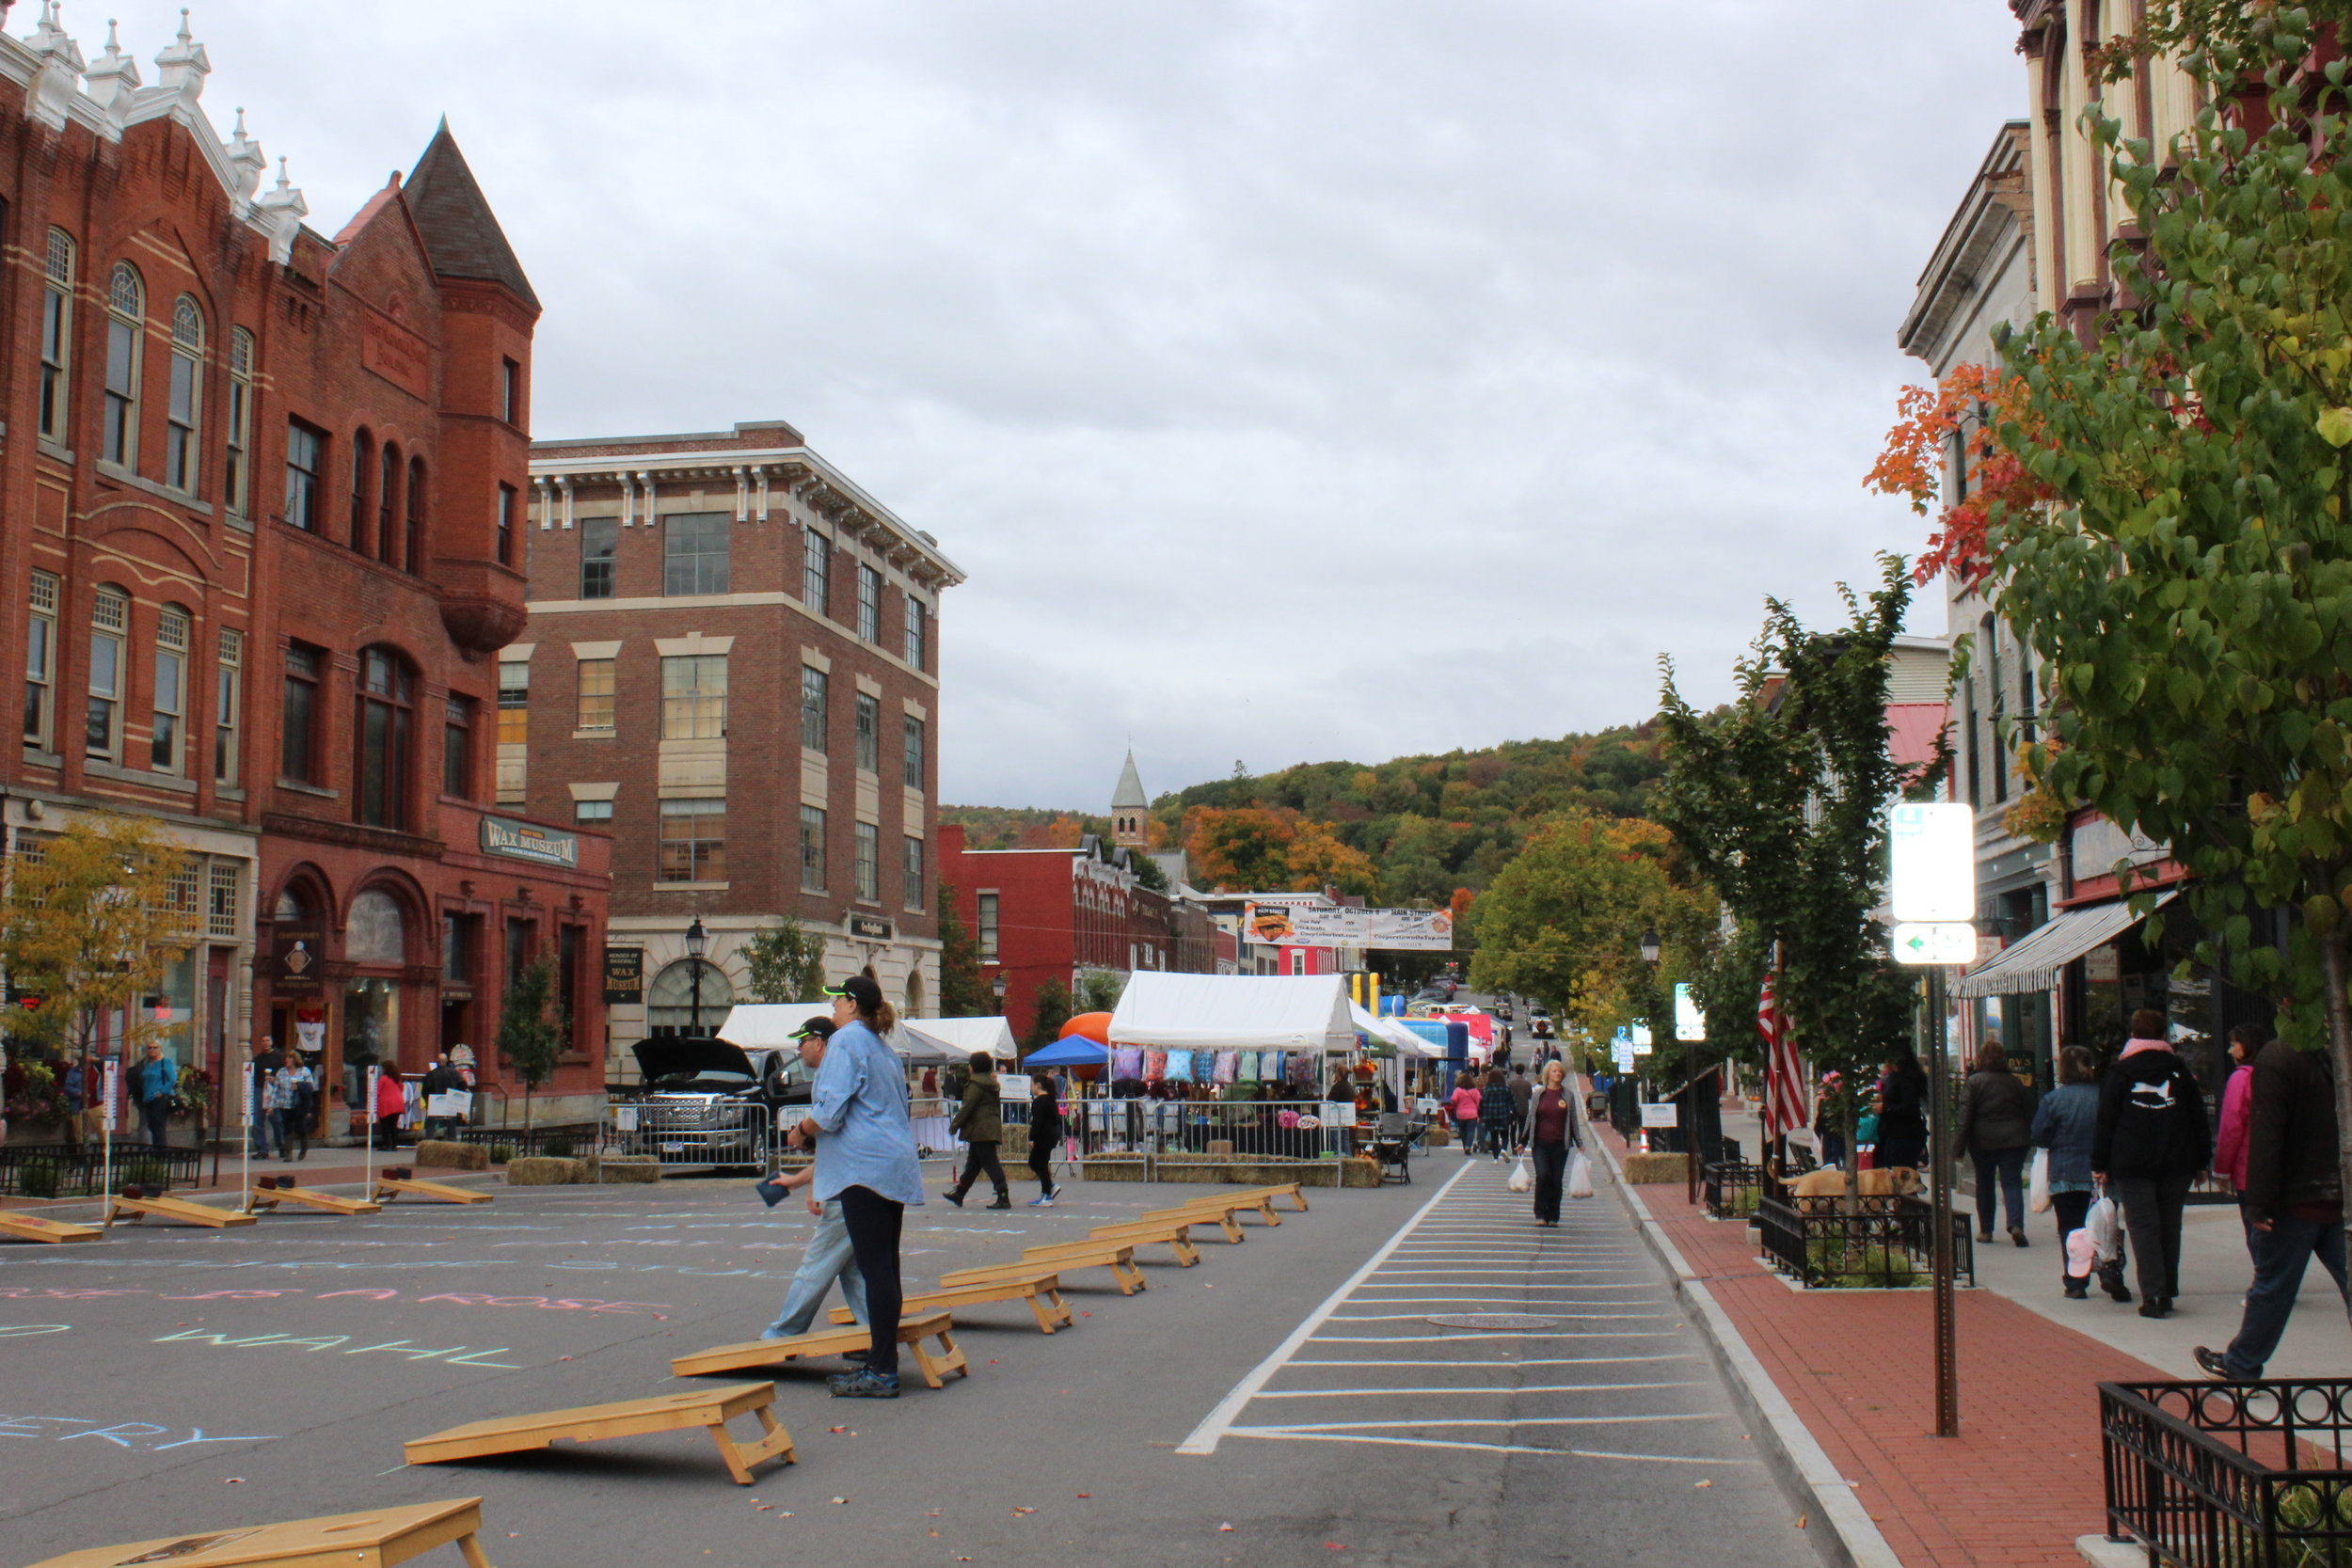 Cooptoberfest, Cooperstown's annual fall festival